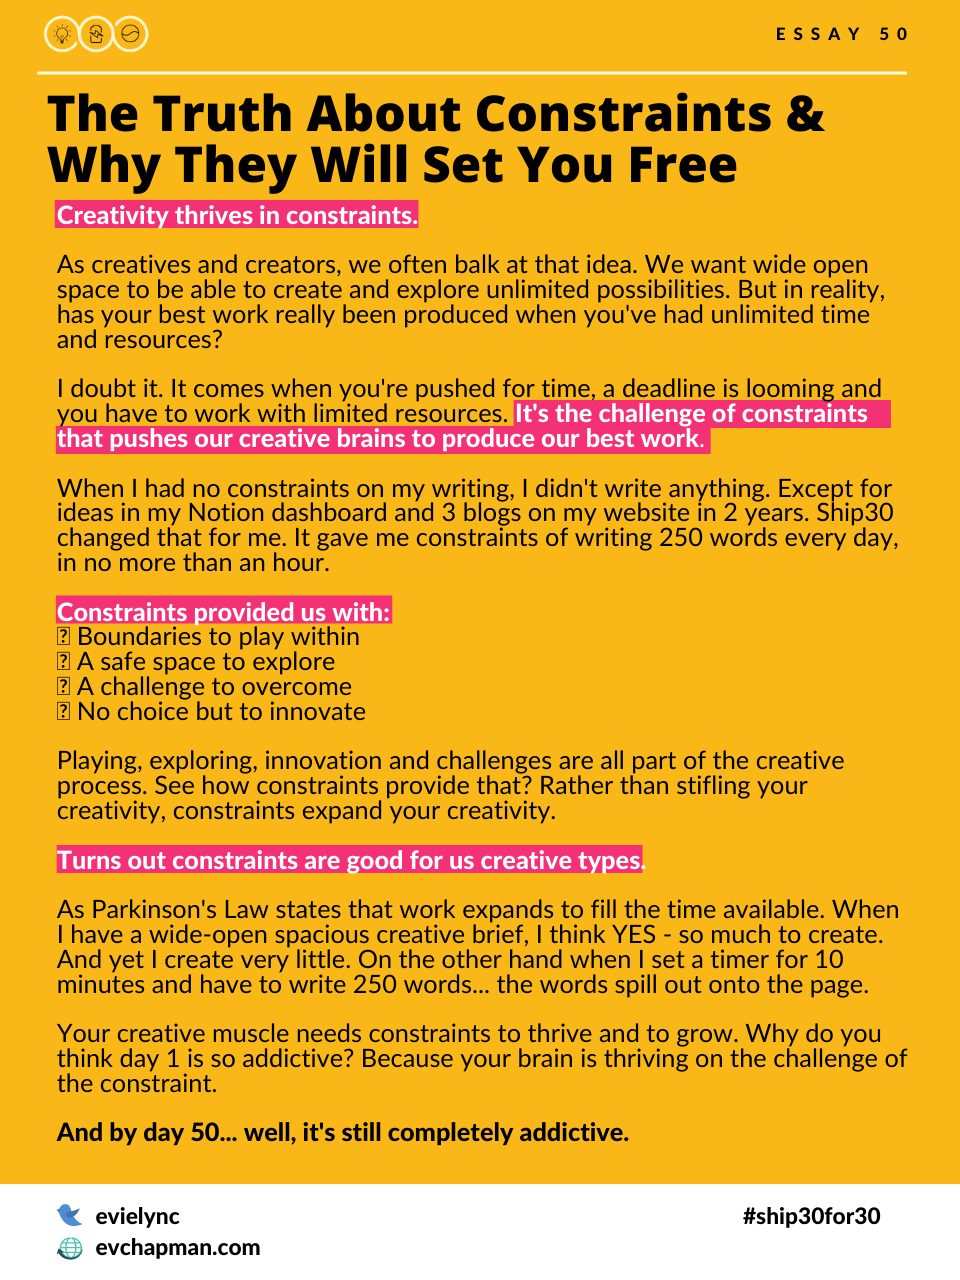 The Truth About Constraint & Why They Will Set You Free